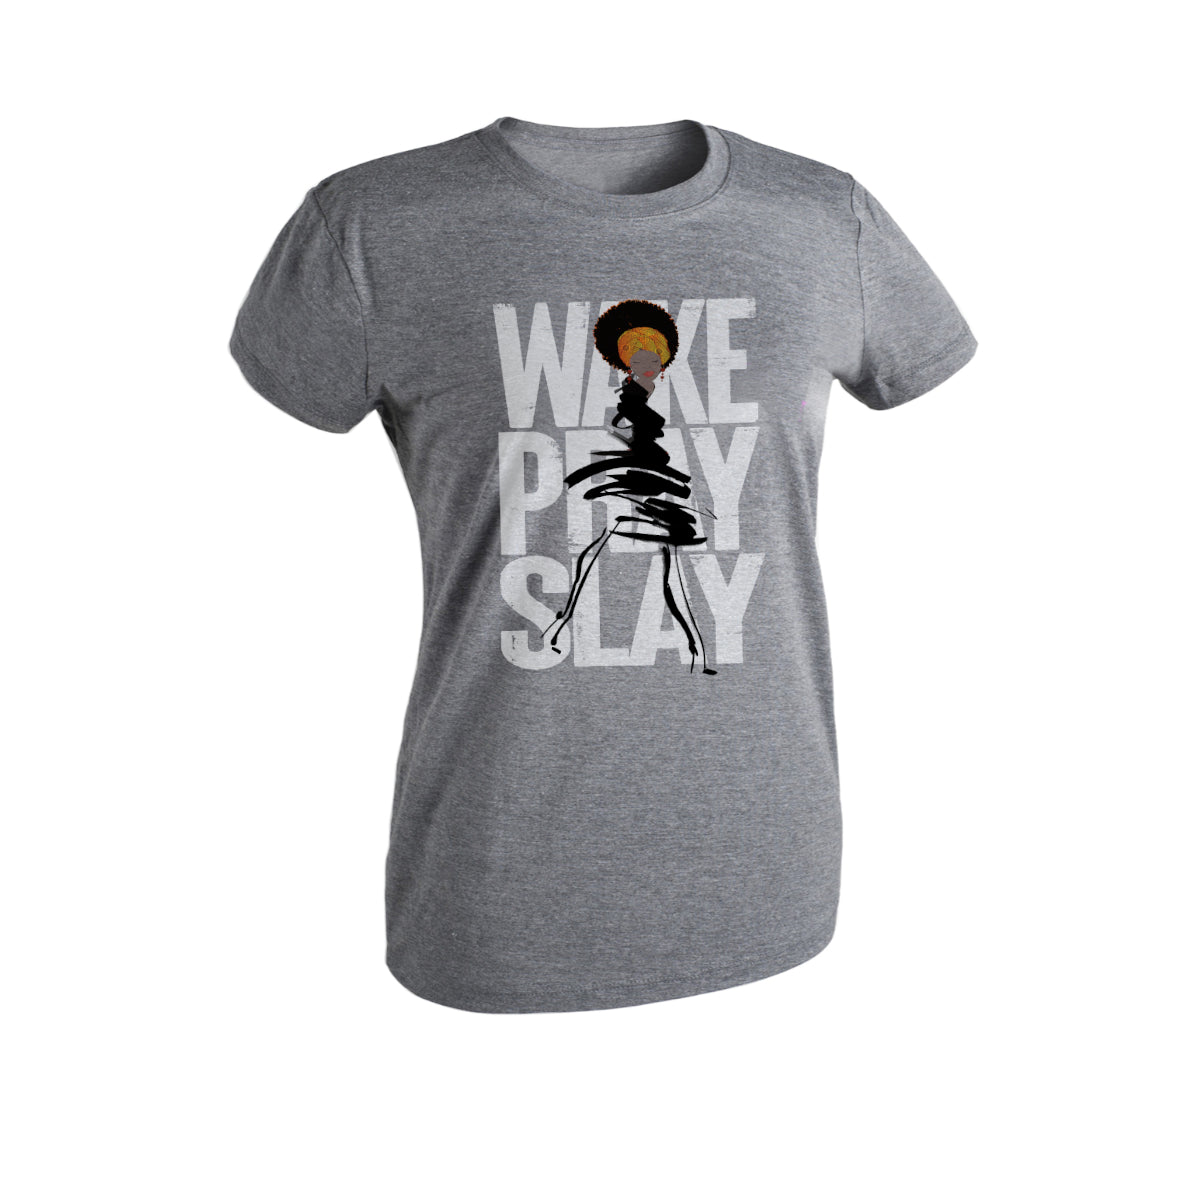 Wake Pray Slay - Women's Cut Tee